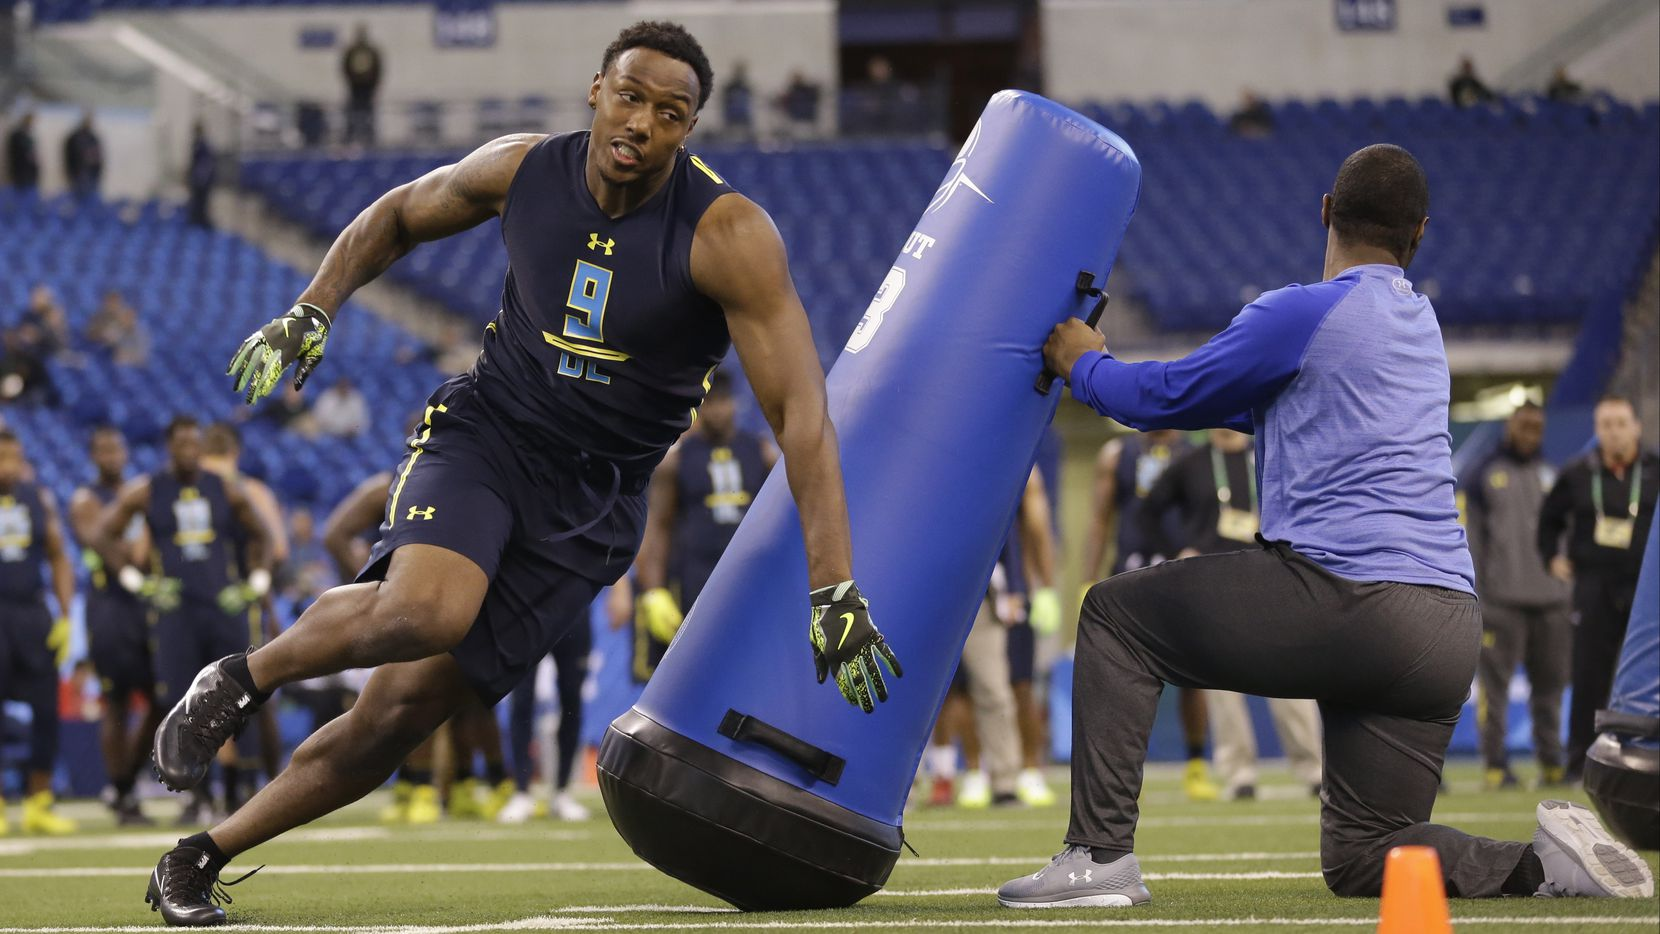 Michigan defensive end Taco Charlton runs a drill at the NFL football scouting combine in Indianapolis, Sunday, March 5, 2017. (AP Photo/Michael Conroy)